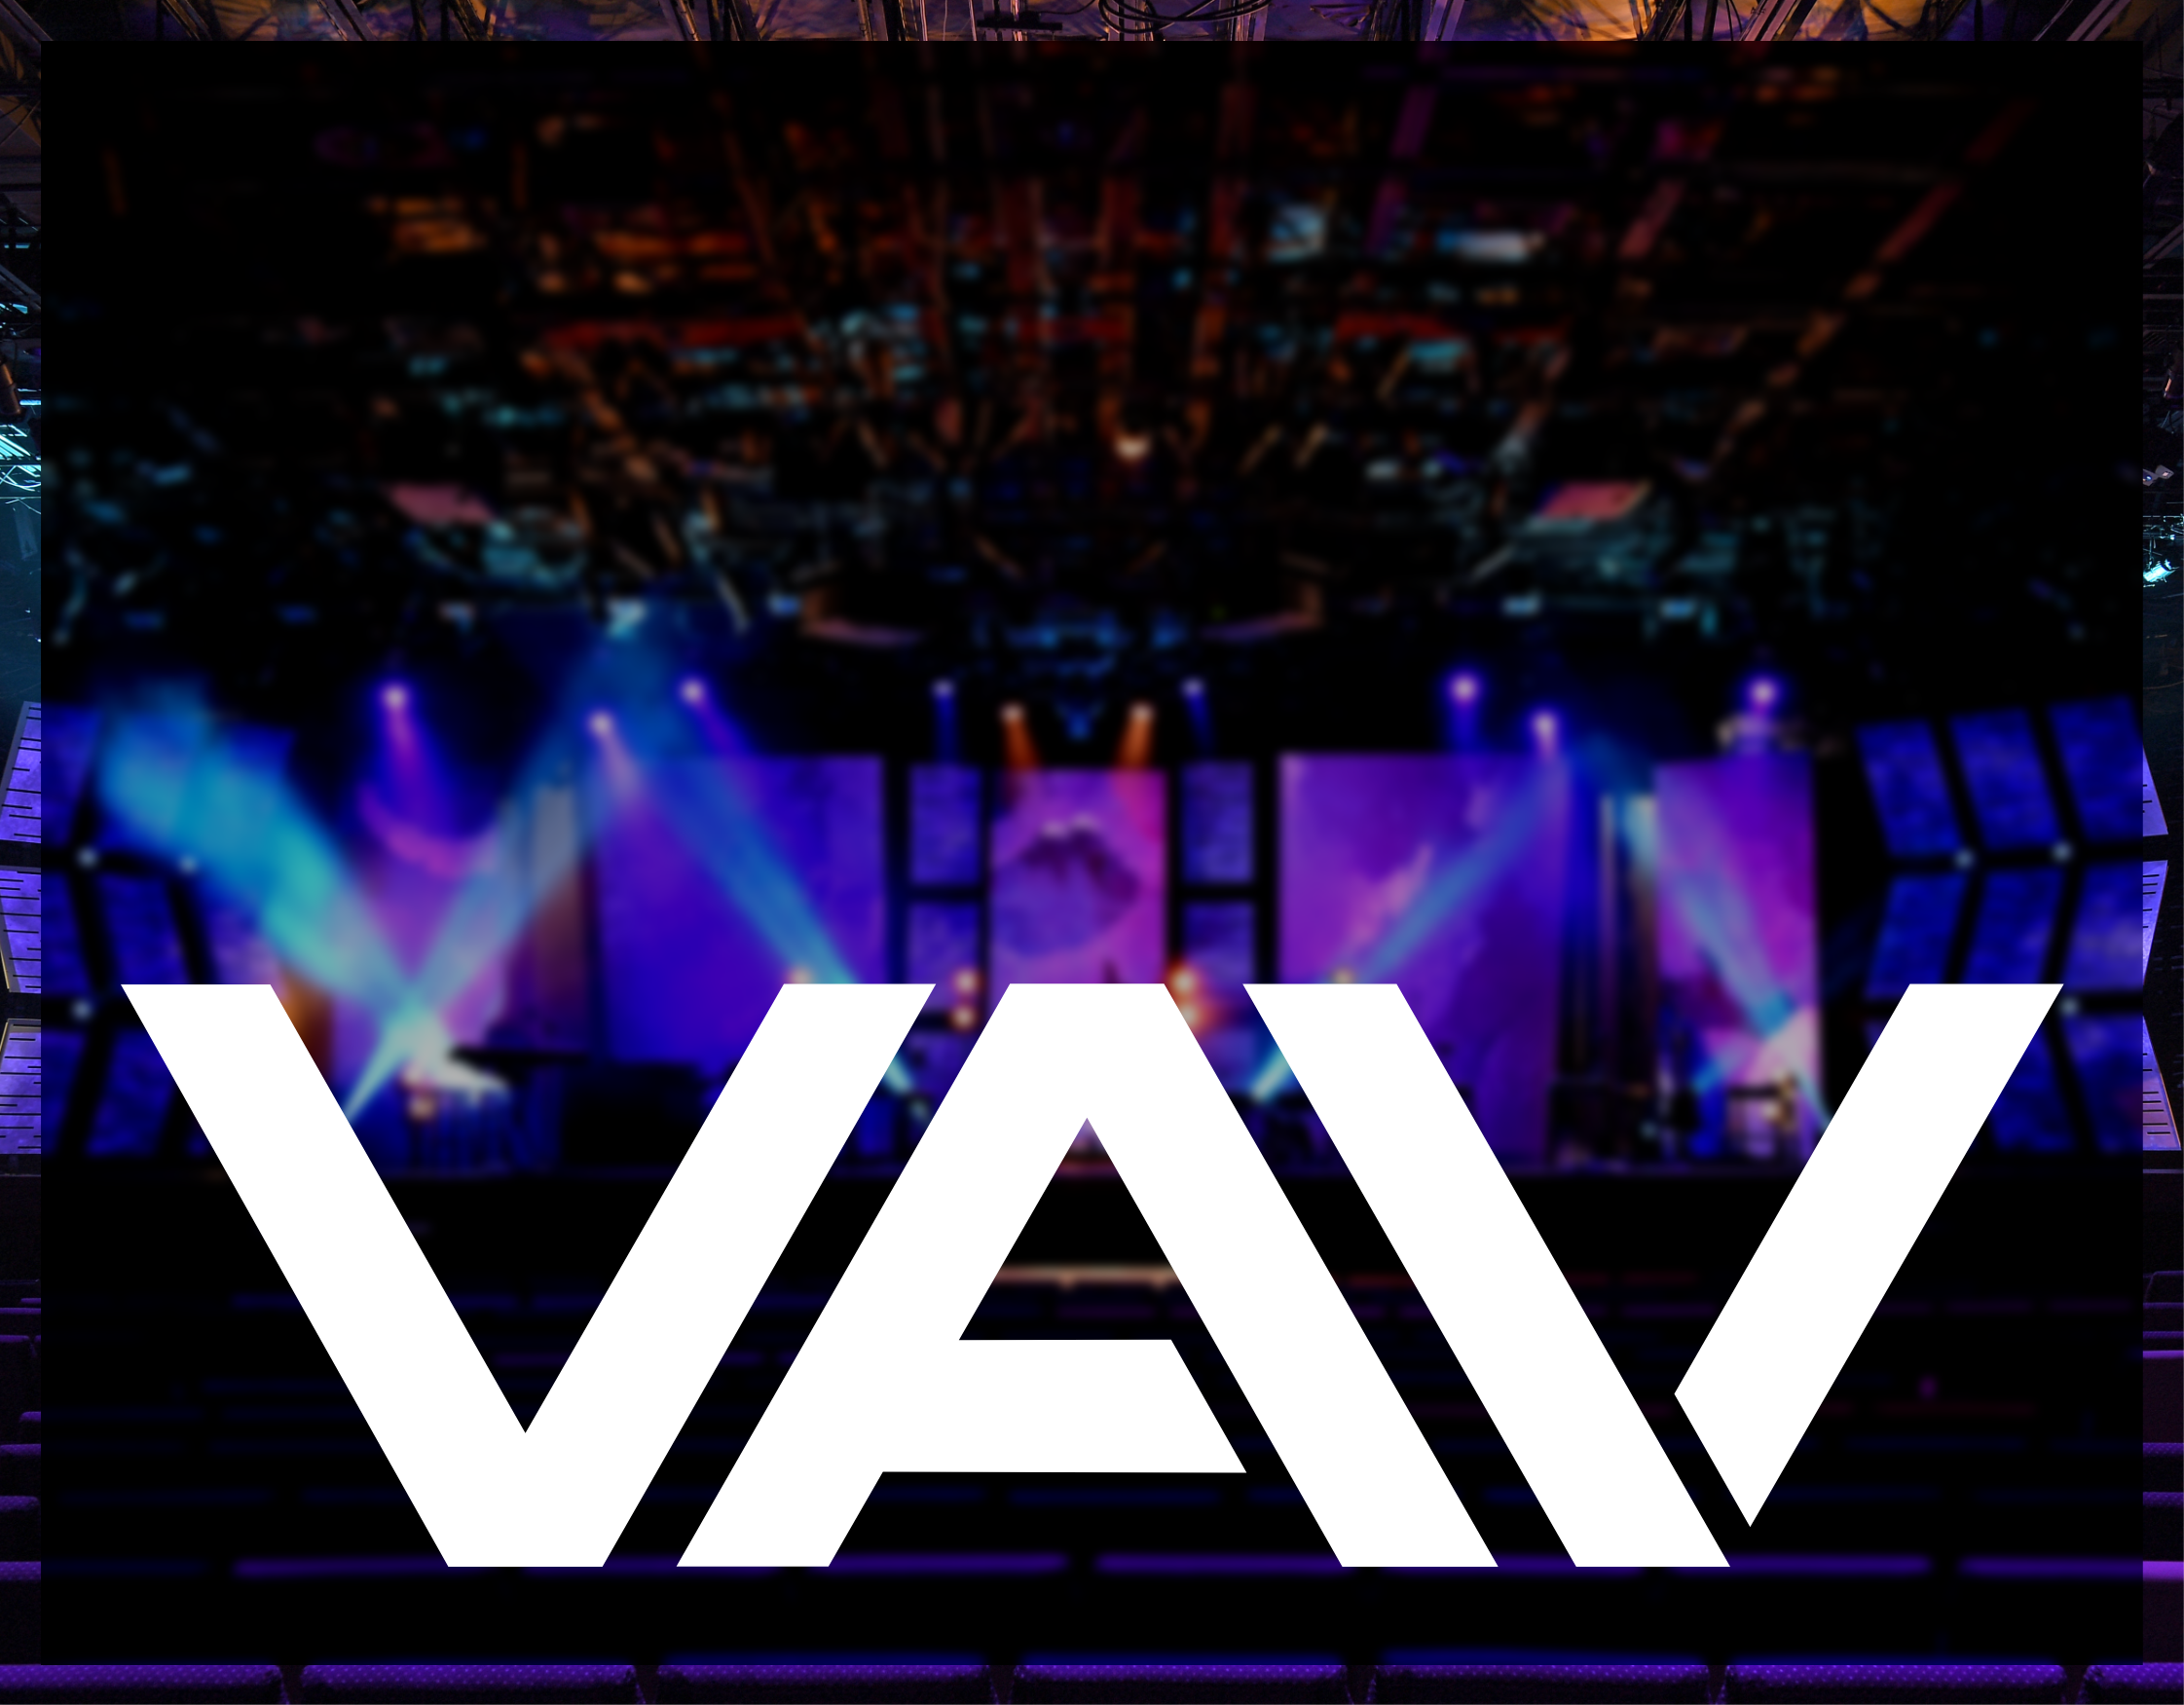 Contact Vantage AV - Vantage AV Offers Live event technology for corporate and business, communications and marketing as well as conference events. Size doesn't matter the team at Vantage AV Will make sure your next event is a perfect success.